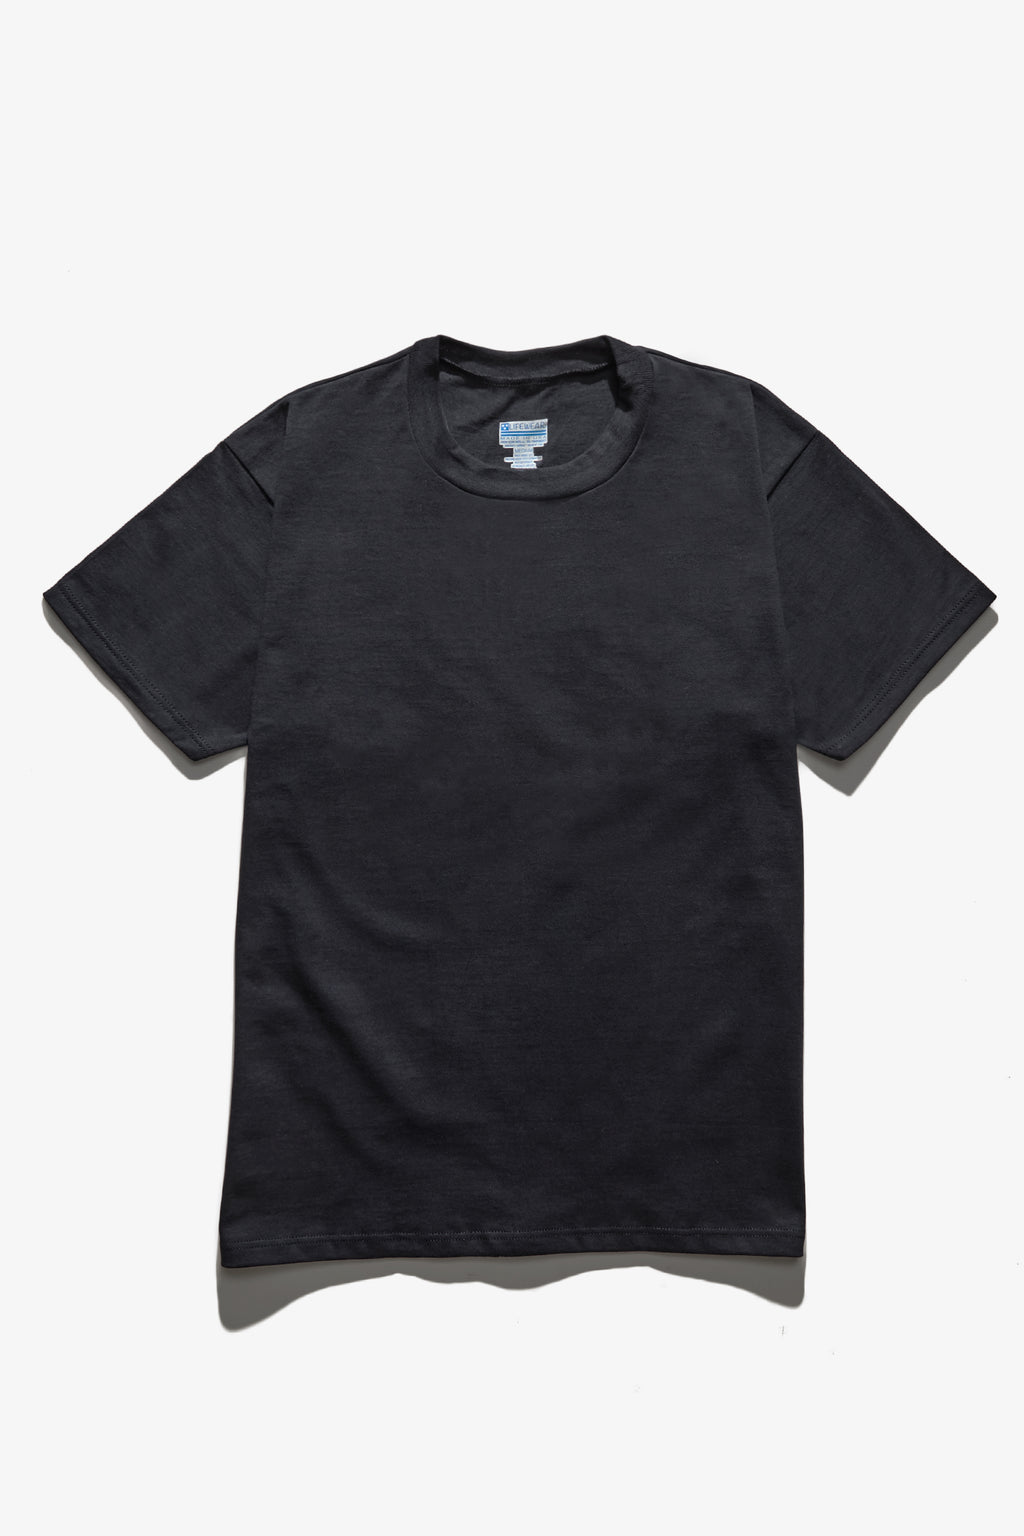 Lifewear USA - 7oz T-Shirt - Black